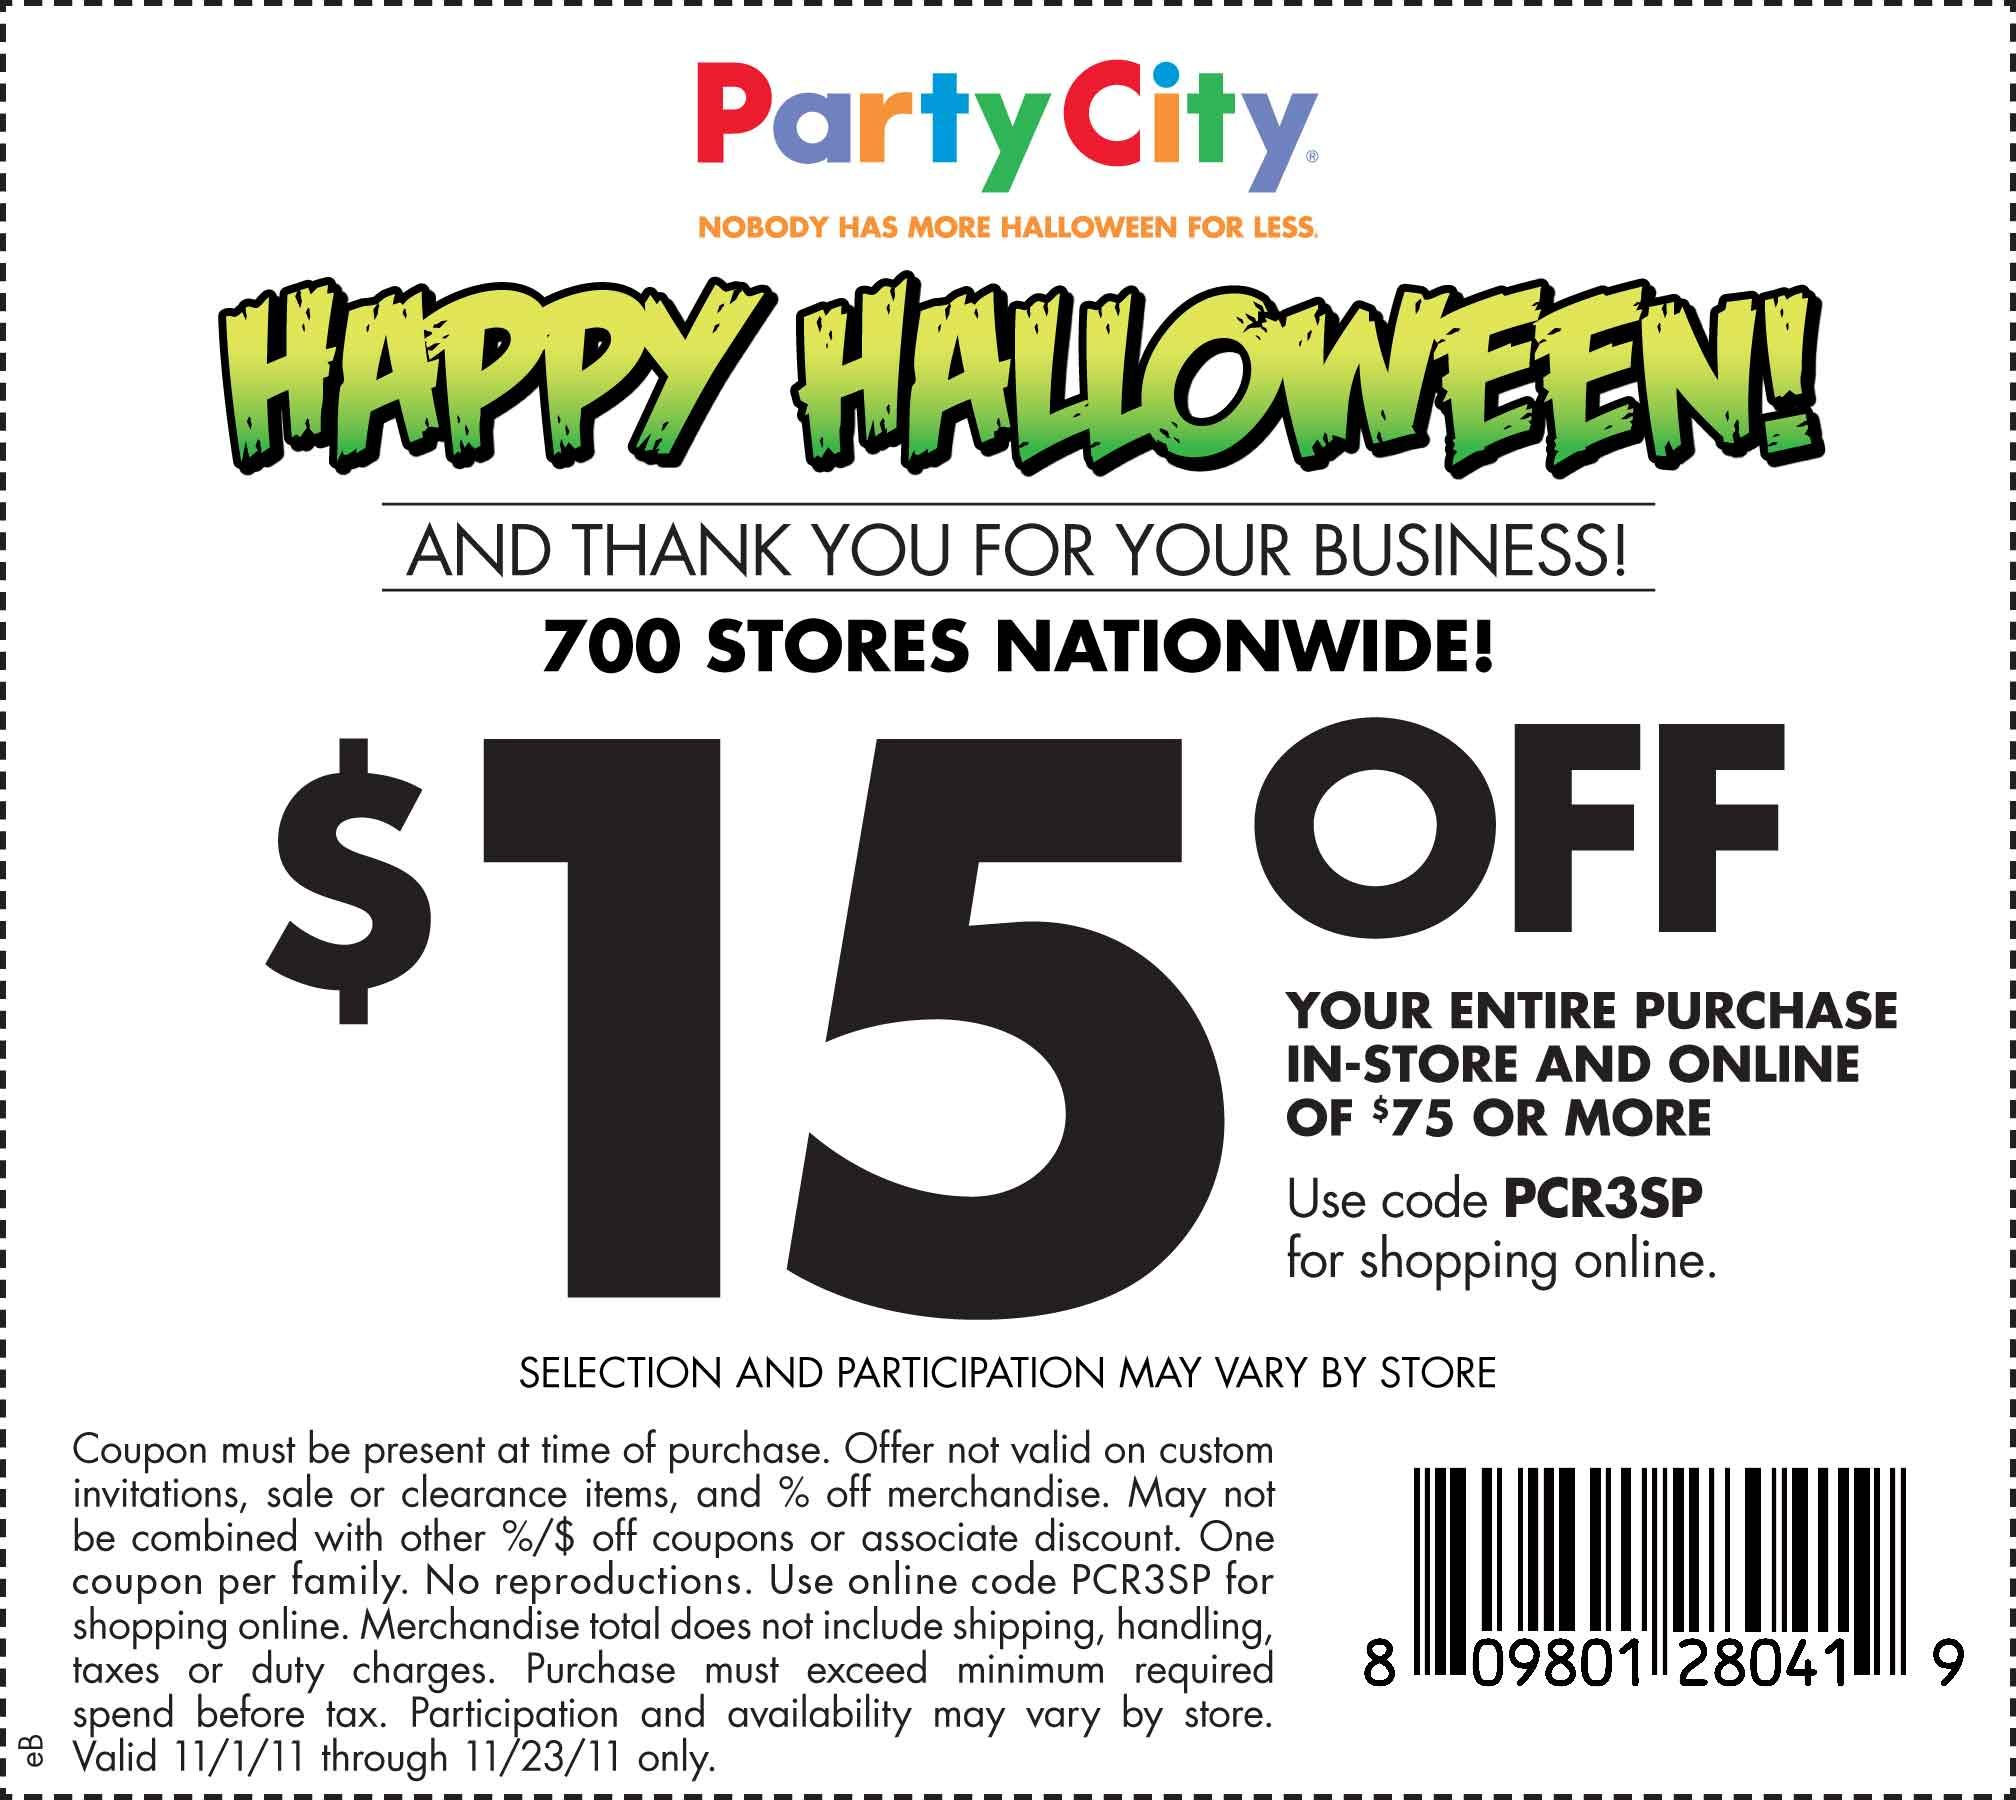 A 15 off coupon for Party City in time for Halloween. It